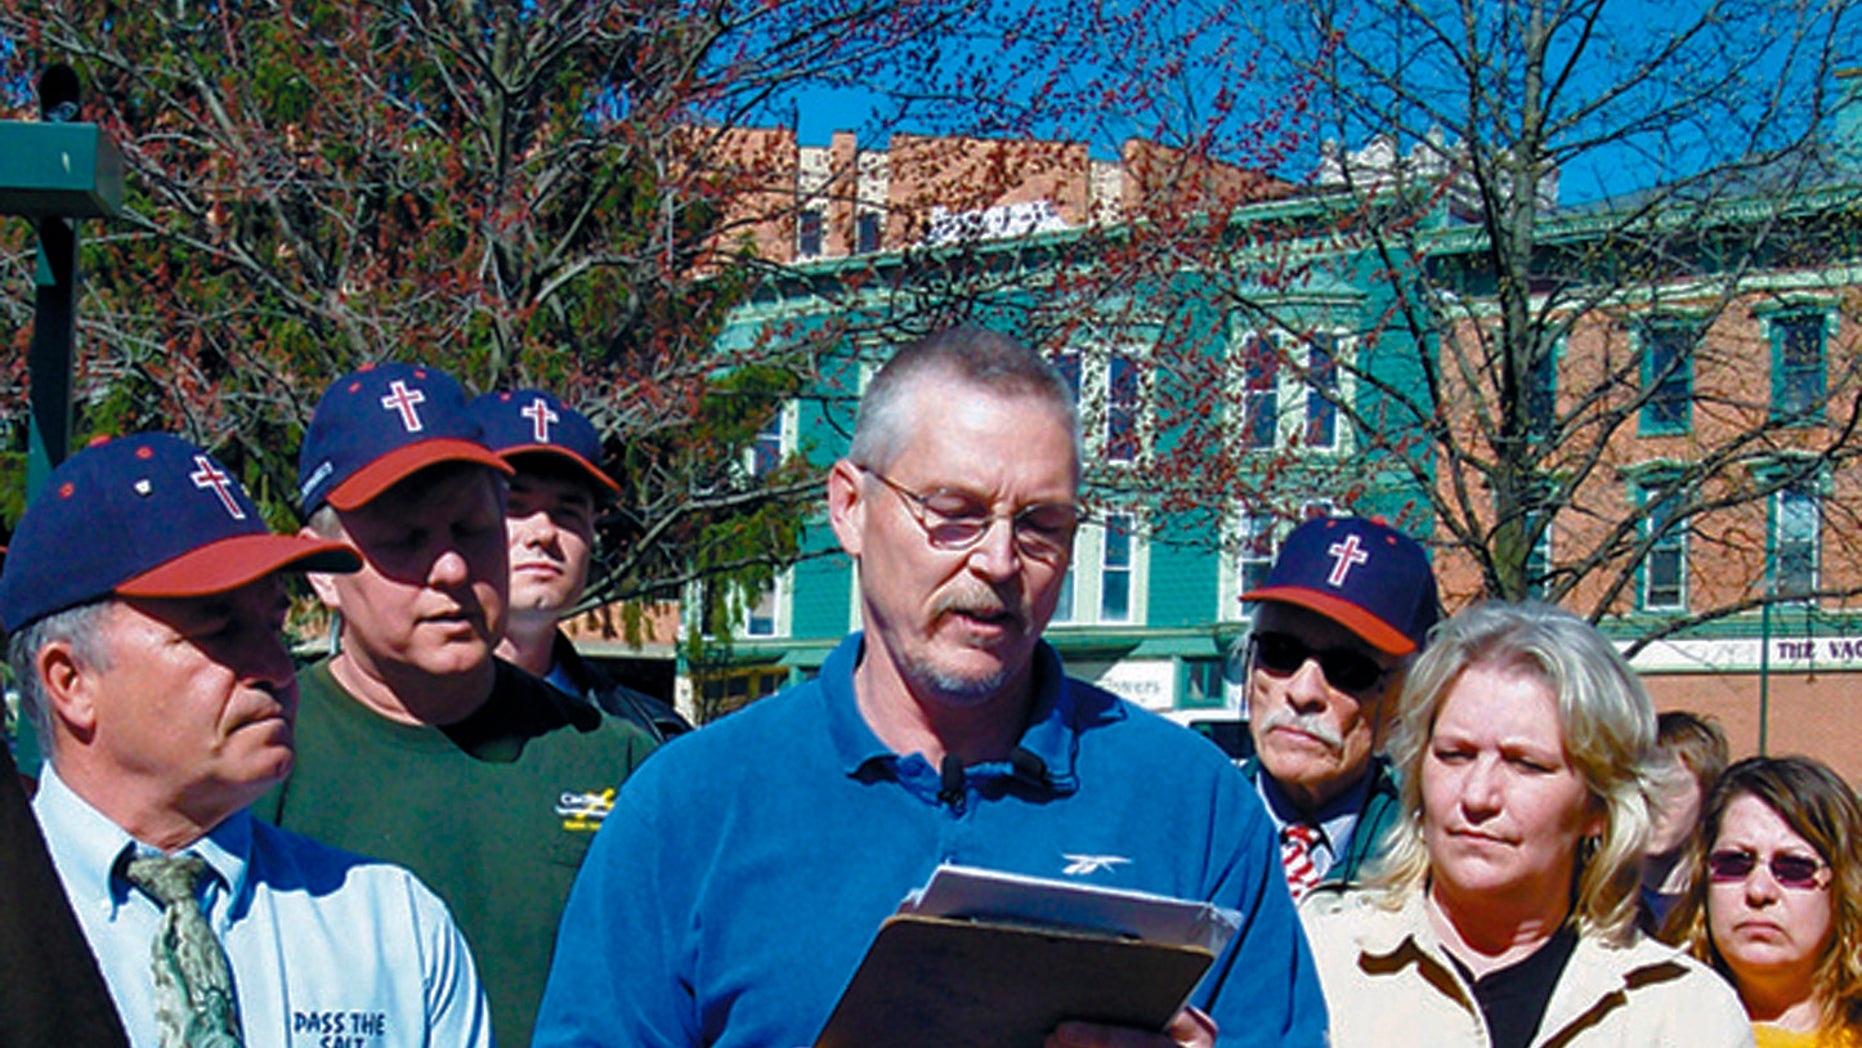 FILE - In this April 16, 2008 file photo, John Freshwater, center, addresses a crowd on Mount Vernon's public square in Mount Vernon, Ohio. The Ohio Supreme Court is ready to hear arguments in the case of Freshwater, a fired public school science teacher who kept a bible on his desk and was accused of preaching religious beliefs in class. (AP Photo/Mount Vernon News, Pam Schehl, File)